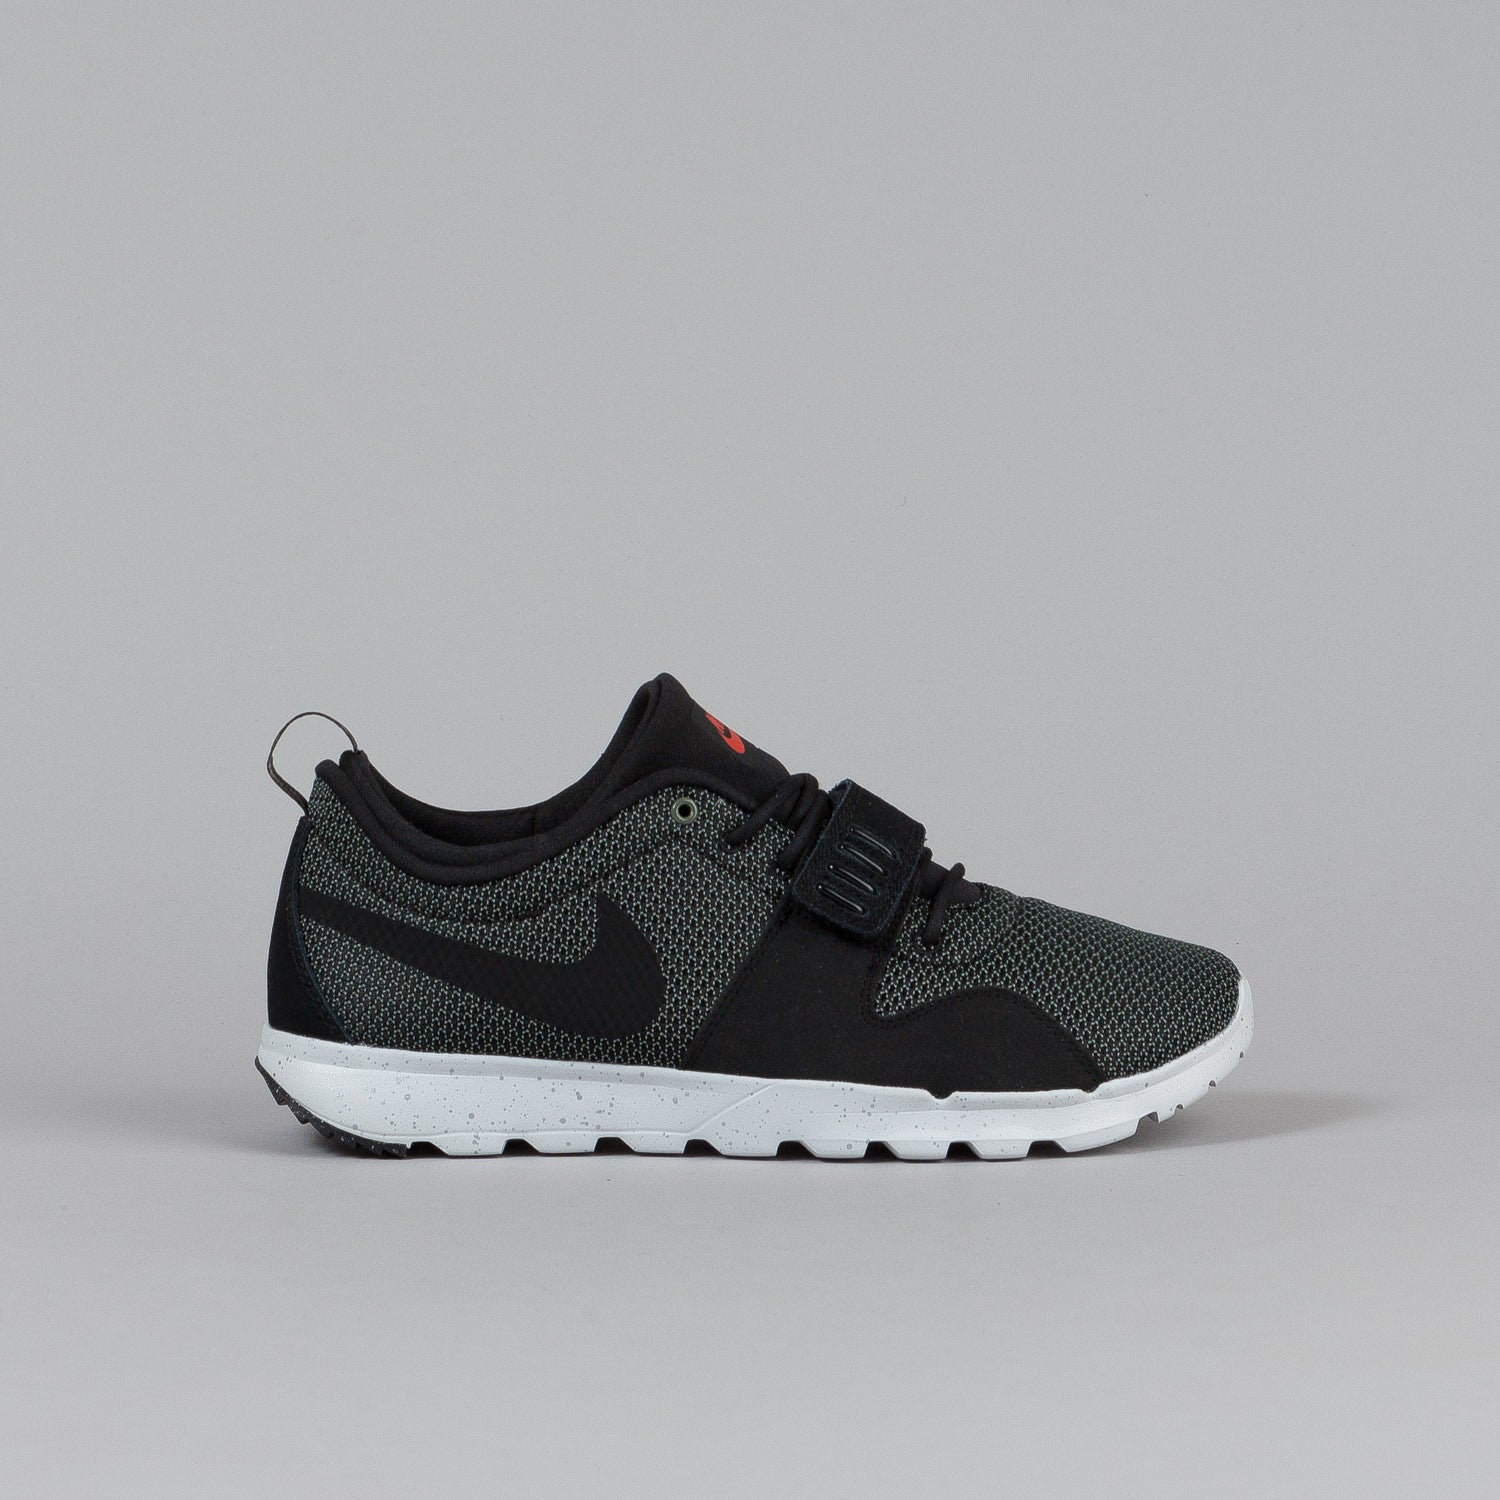 Nike SB Trainerendor Iron Green / Black